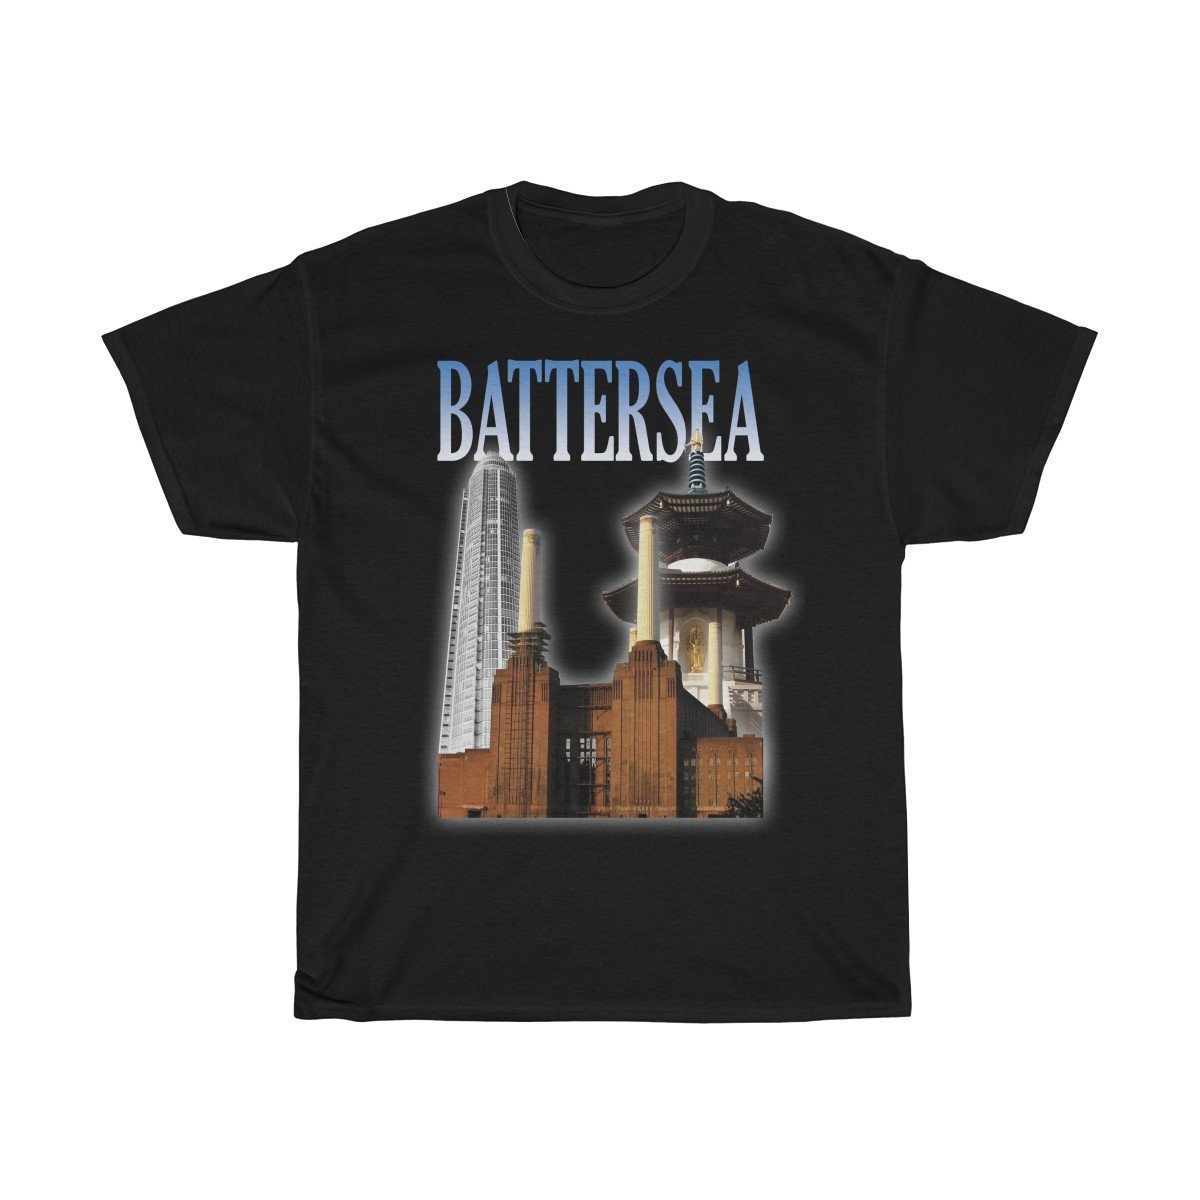 Show off your local love with this #Battersea t-shirt!https://shop.southlondonclub.co.uk/collections/unisex-t-shirts/products/battersea-90s-style-unisex-t-shirt…pic.twitter.com/e6xANHlPuT